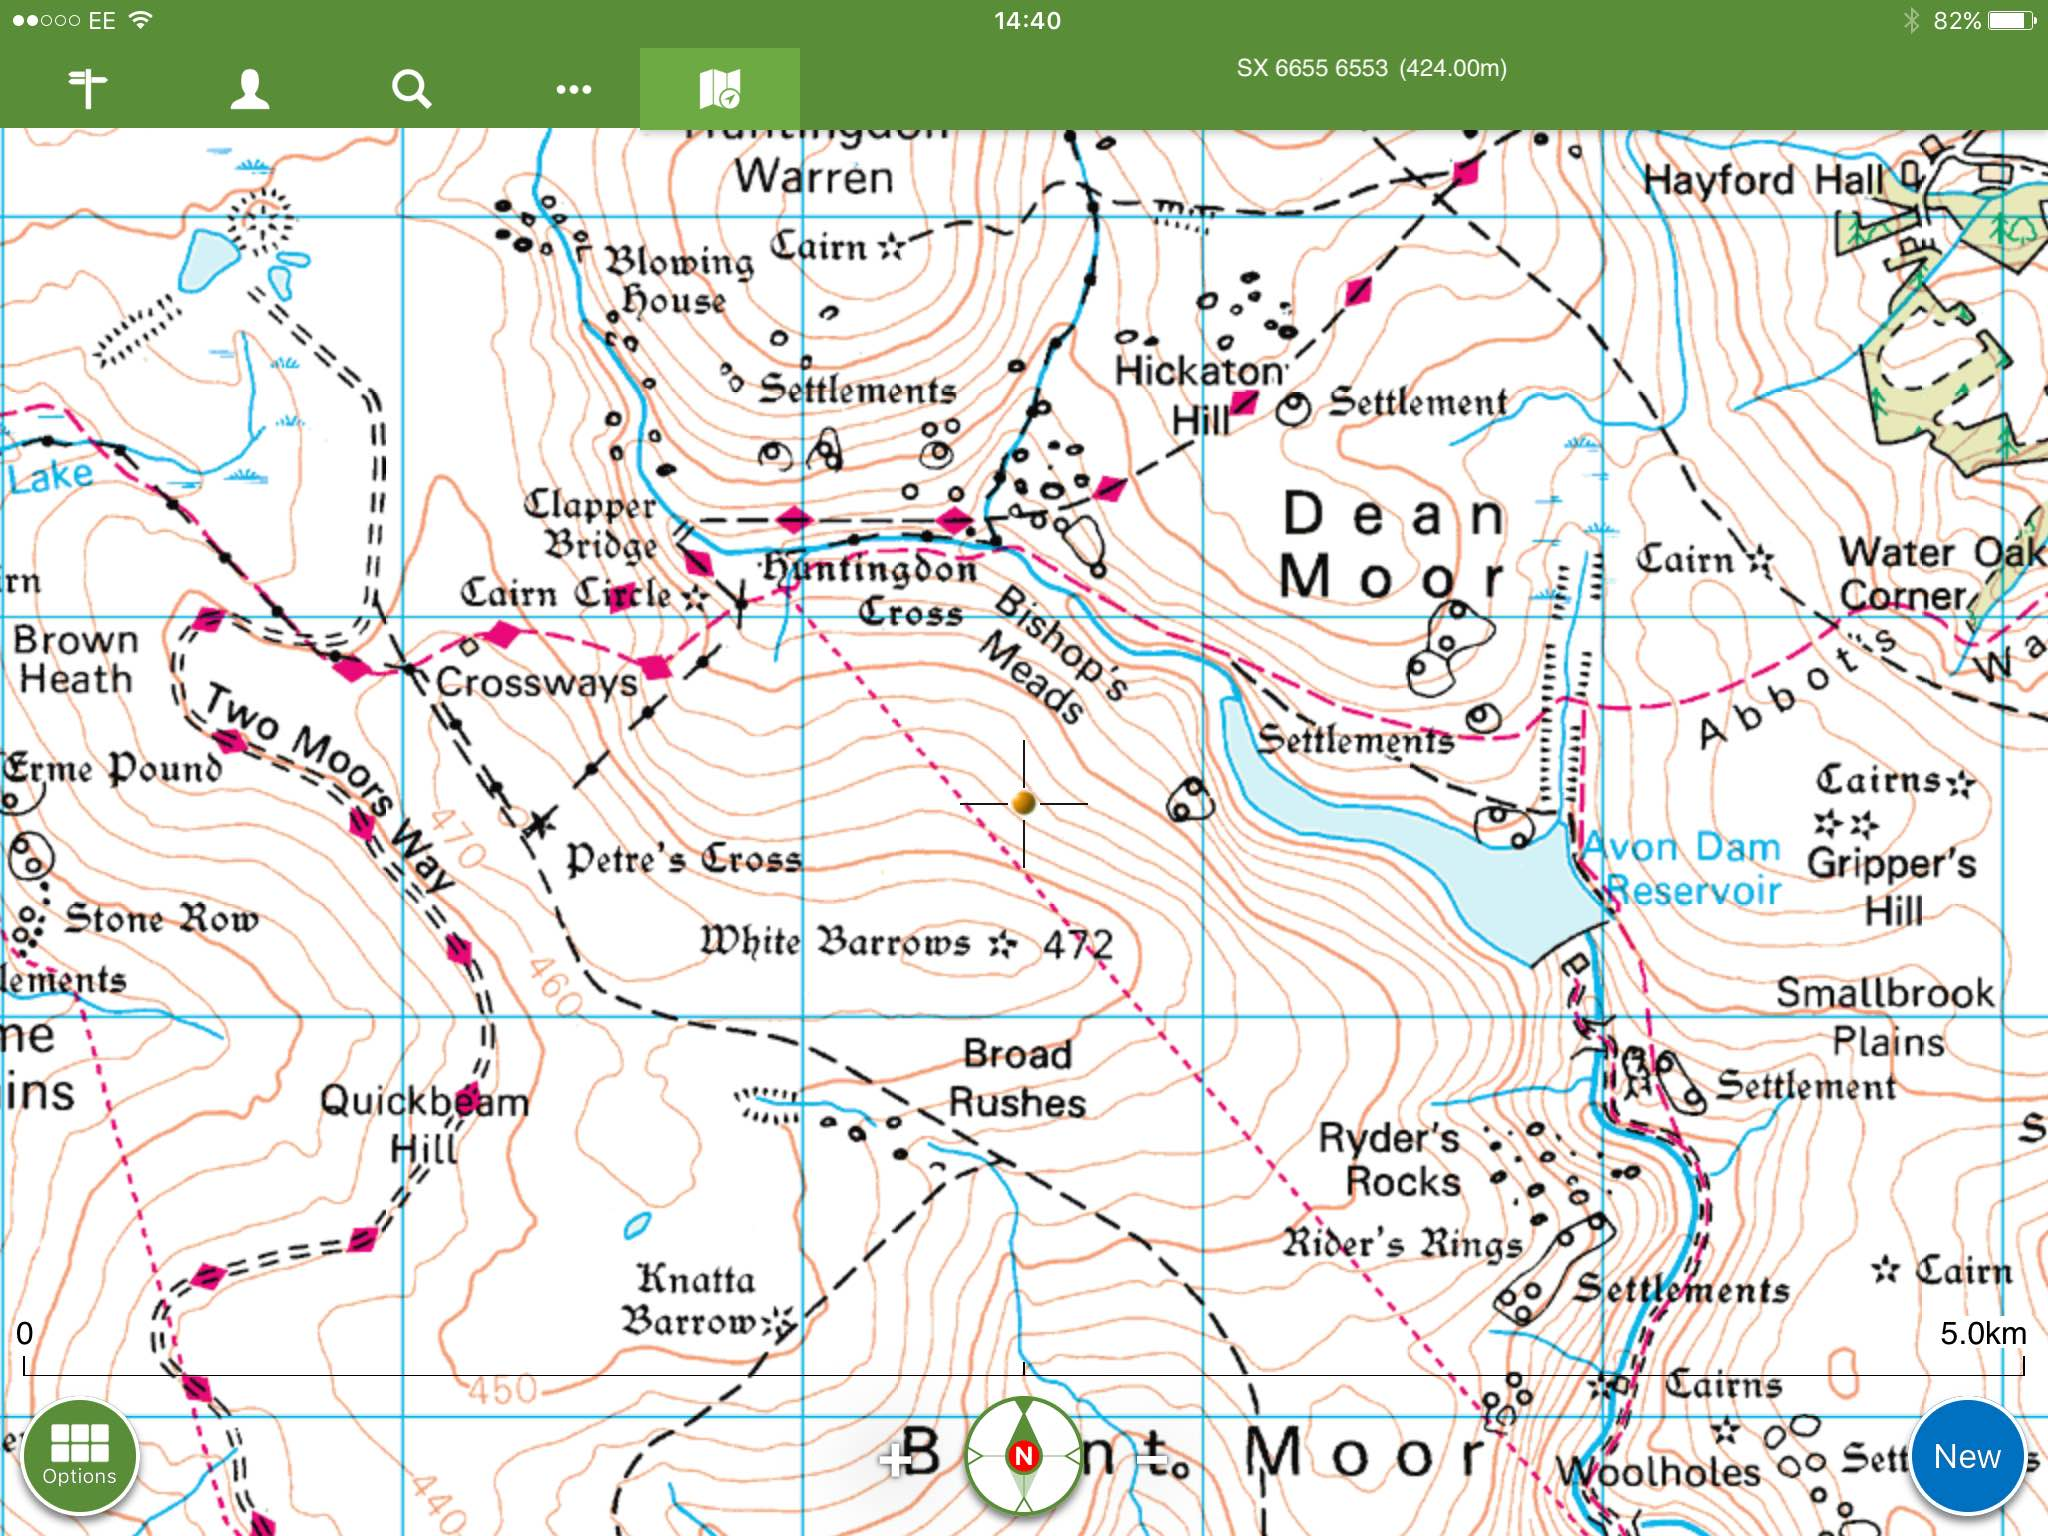 Dartmoor Search and Rescue Ashburton called out to assist a missing walker near Eastern White Barrow